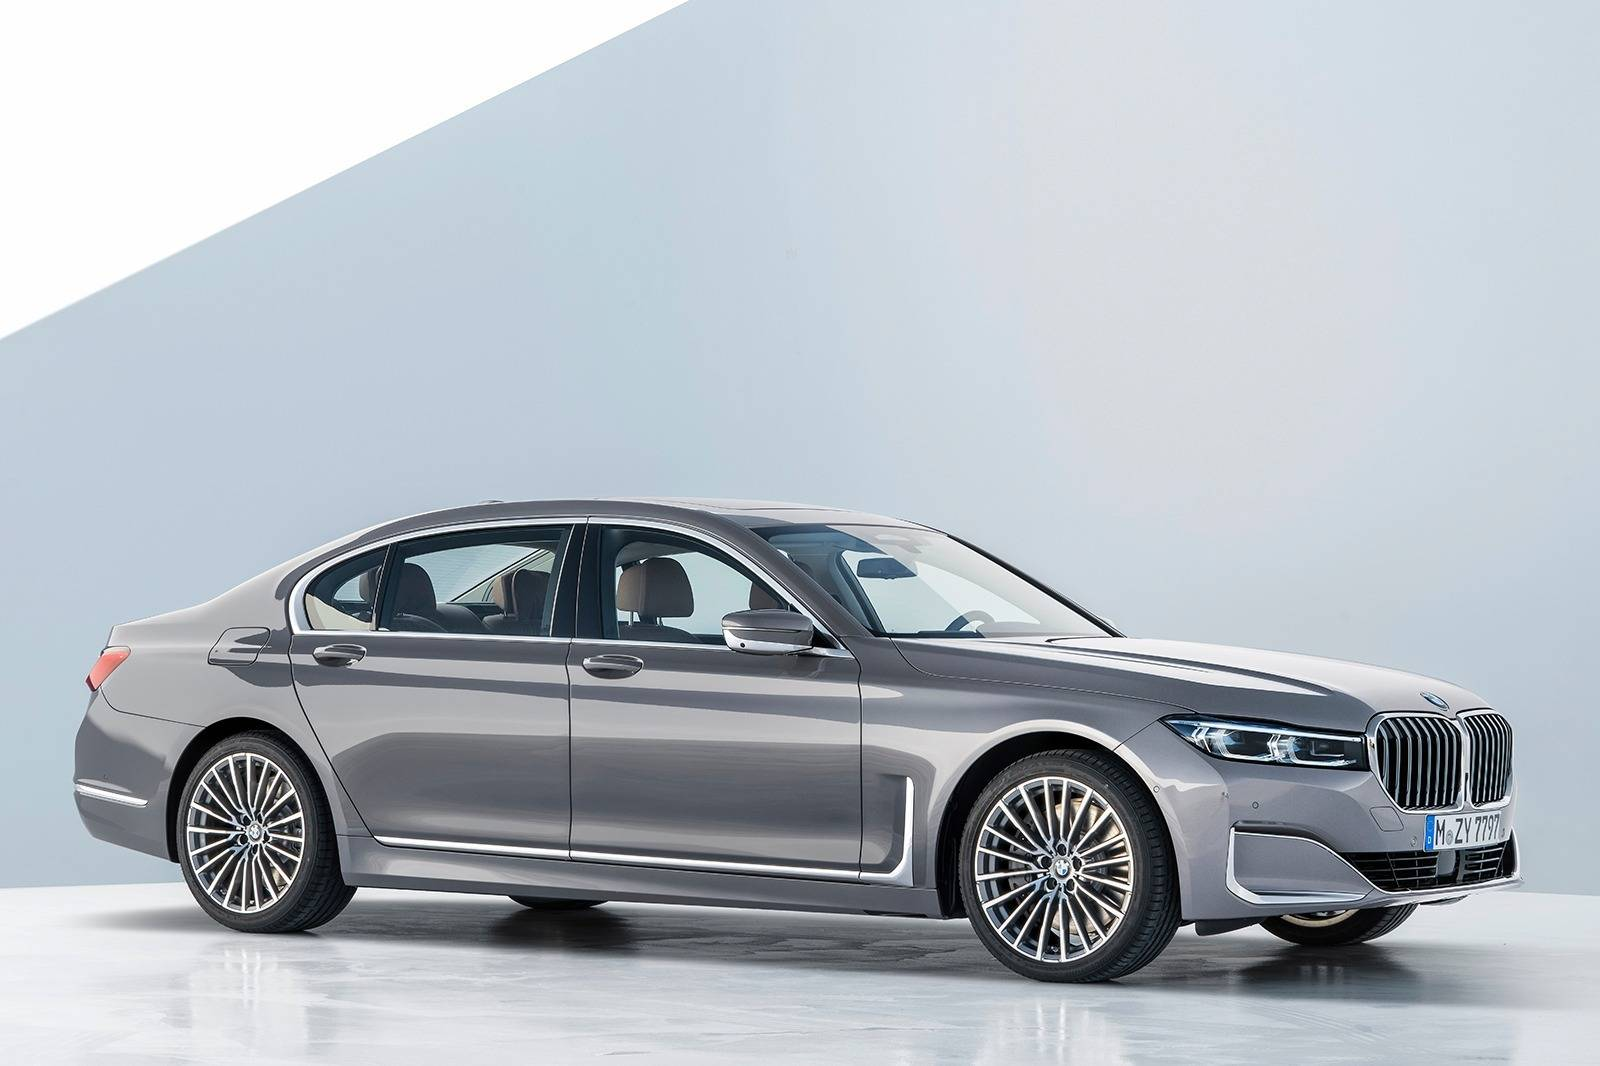 77 The Best 2020 BMW 7 Series Style